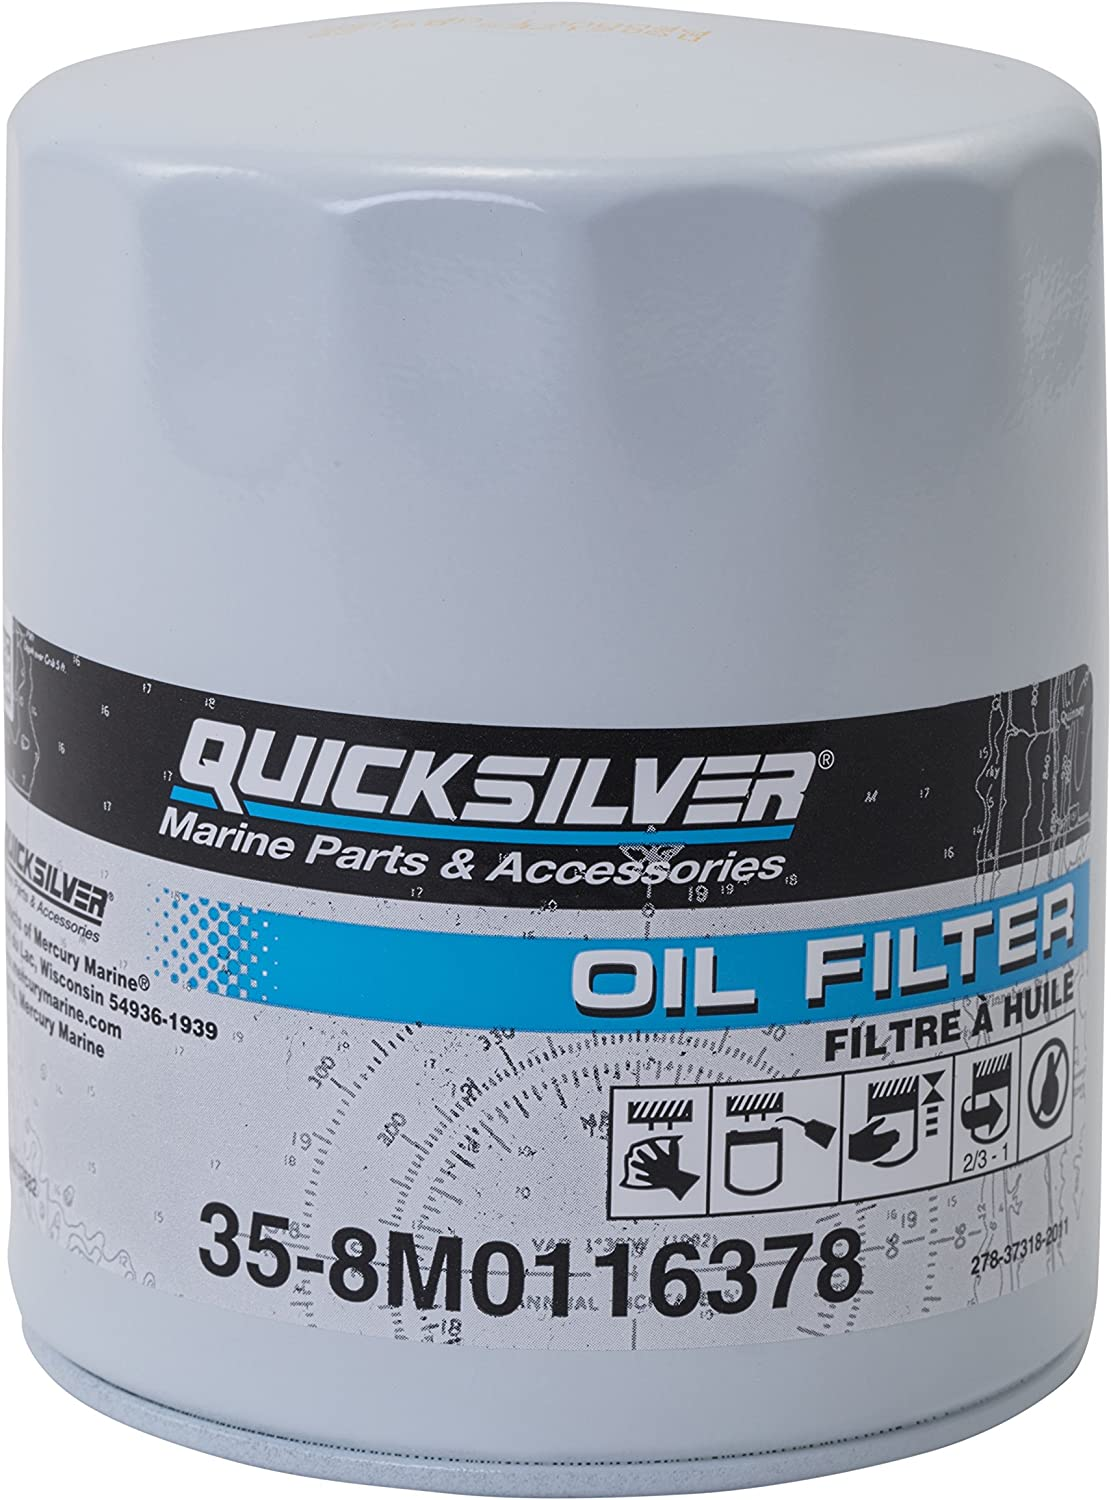 Quicksilver 8M0116378 Oil Filter - MerCruiser Stern Drive and Inboard Engines by Ford Motor Company